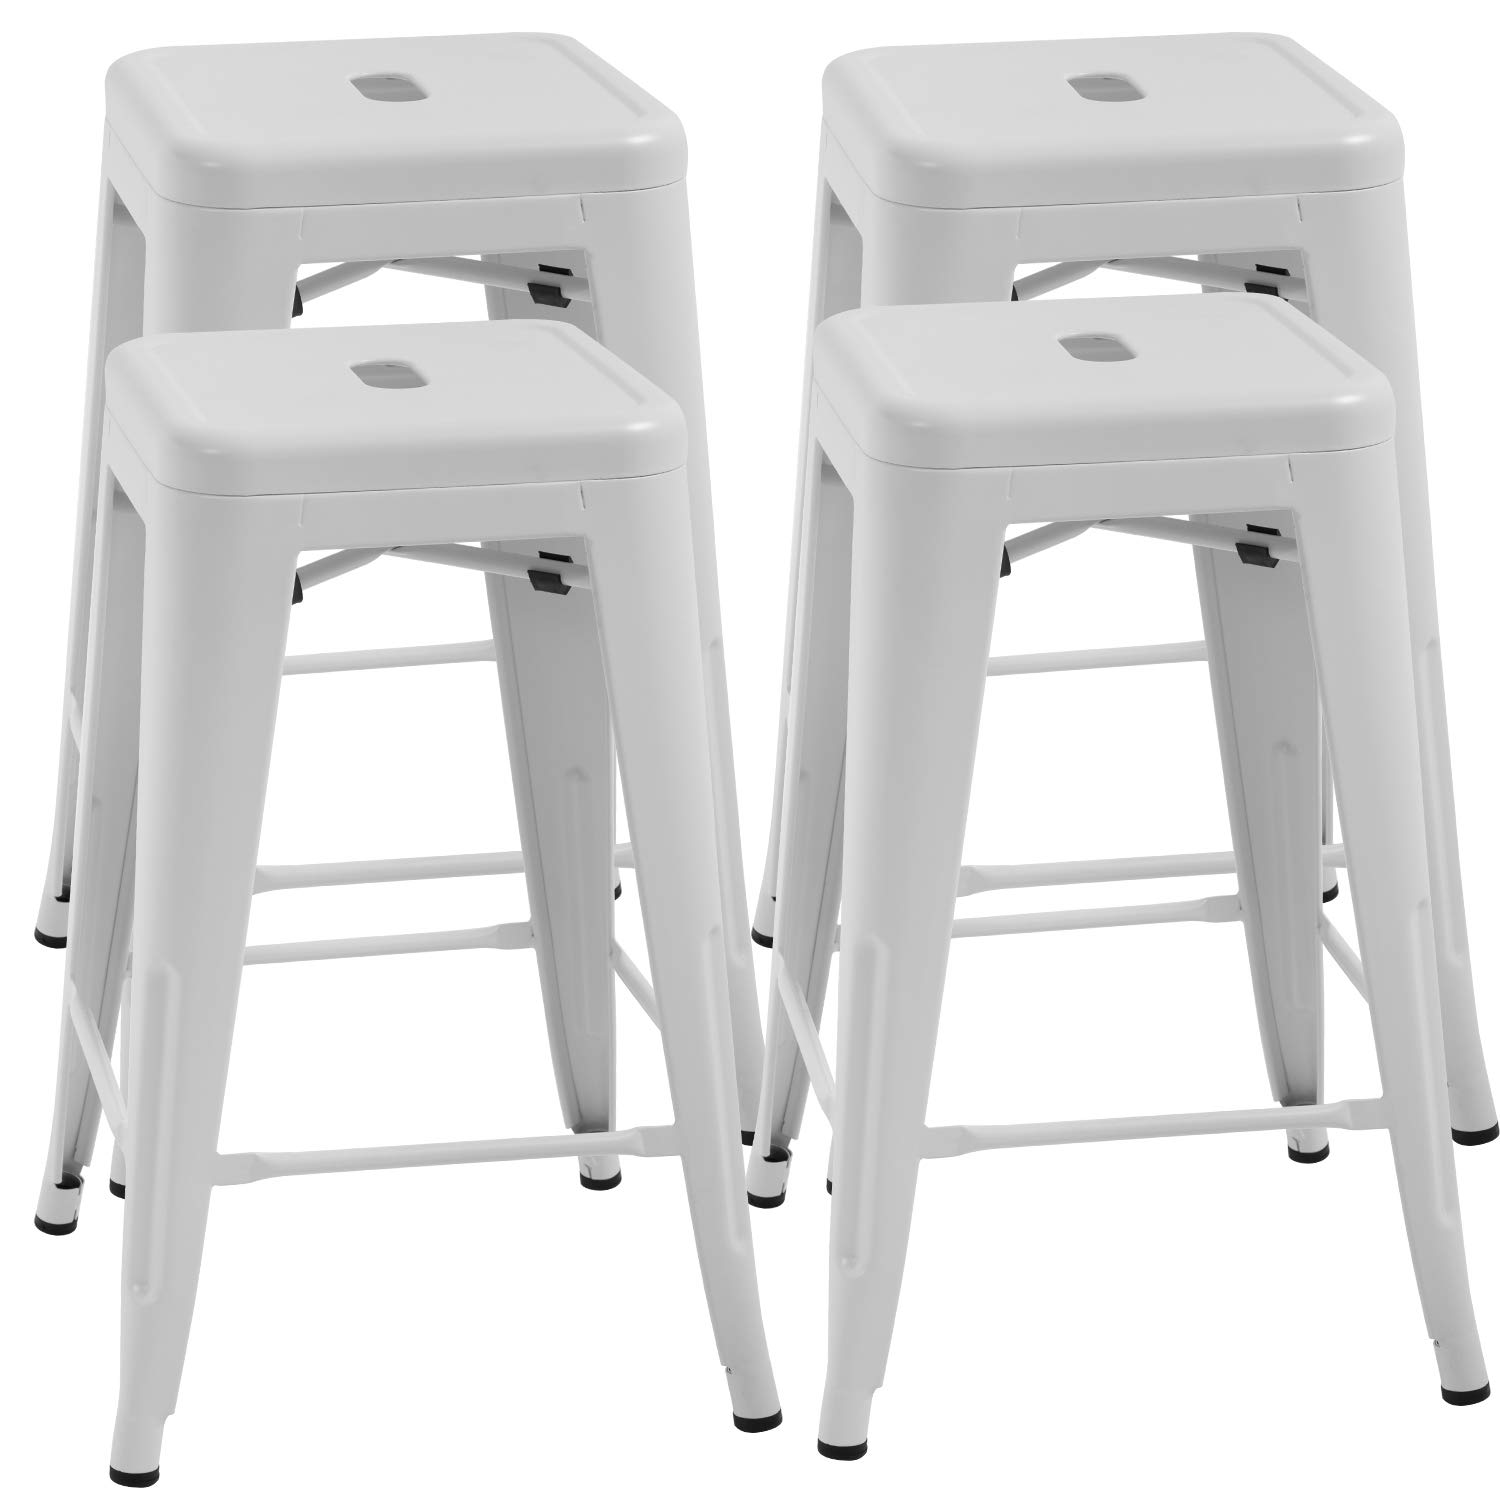 FDW Counter Height Bar Stools Set of 4 Metal Bar Stools 24 Inches Kitchen Counter Stool Industrial Metal Stool Patio Furniture Indoor/Outdoor Stool Moden Stackable Barstools Restaurant Dining Chairs by FDW